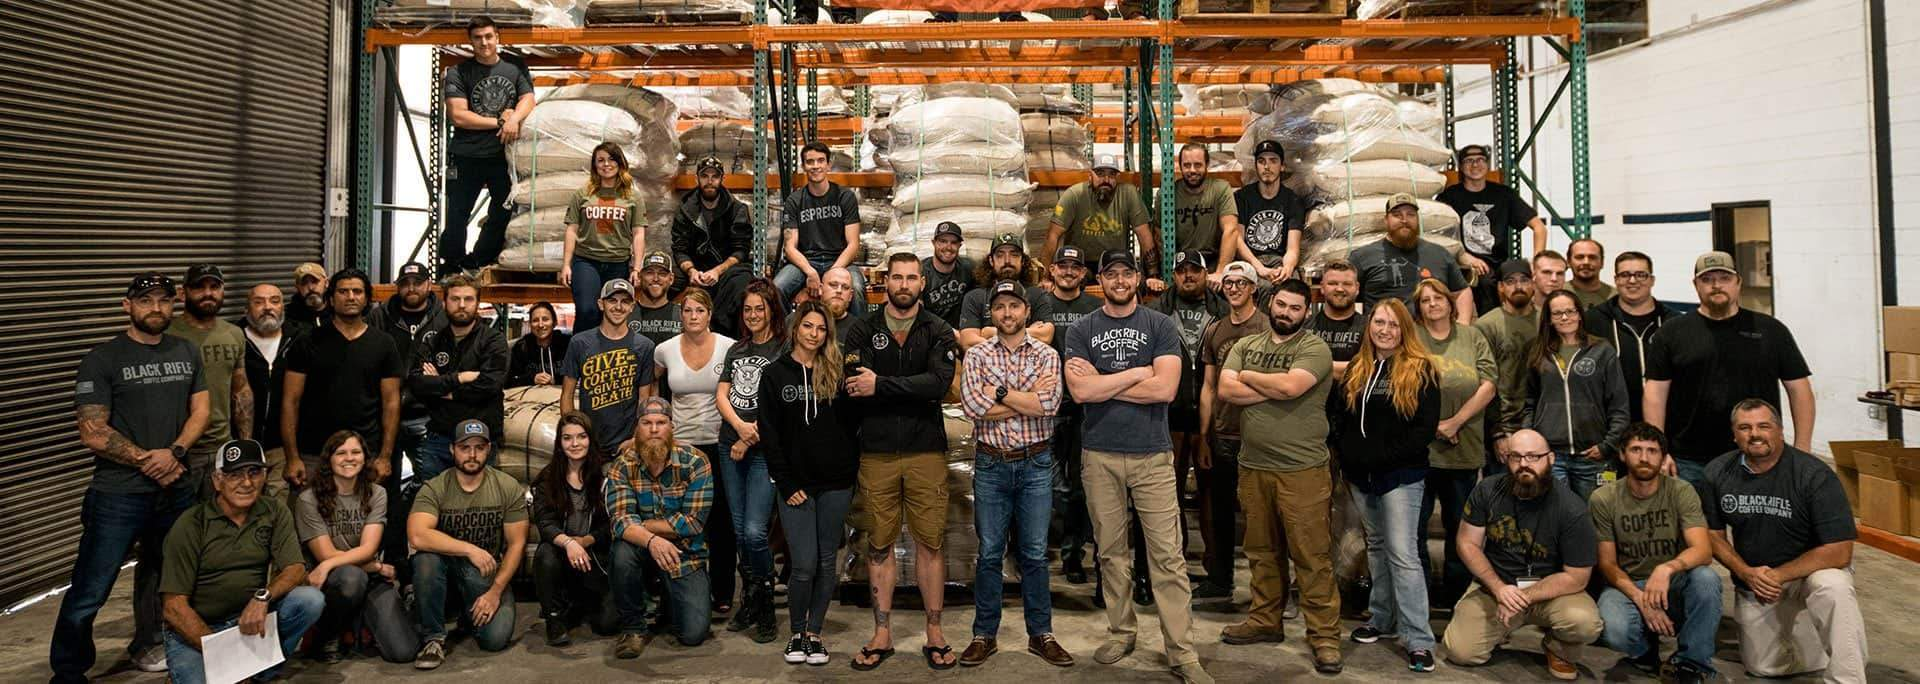 Our Mission - Black Rifle Coffee Company